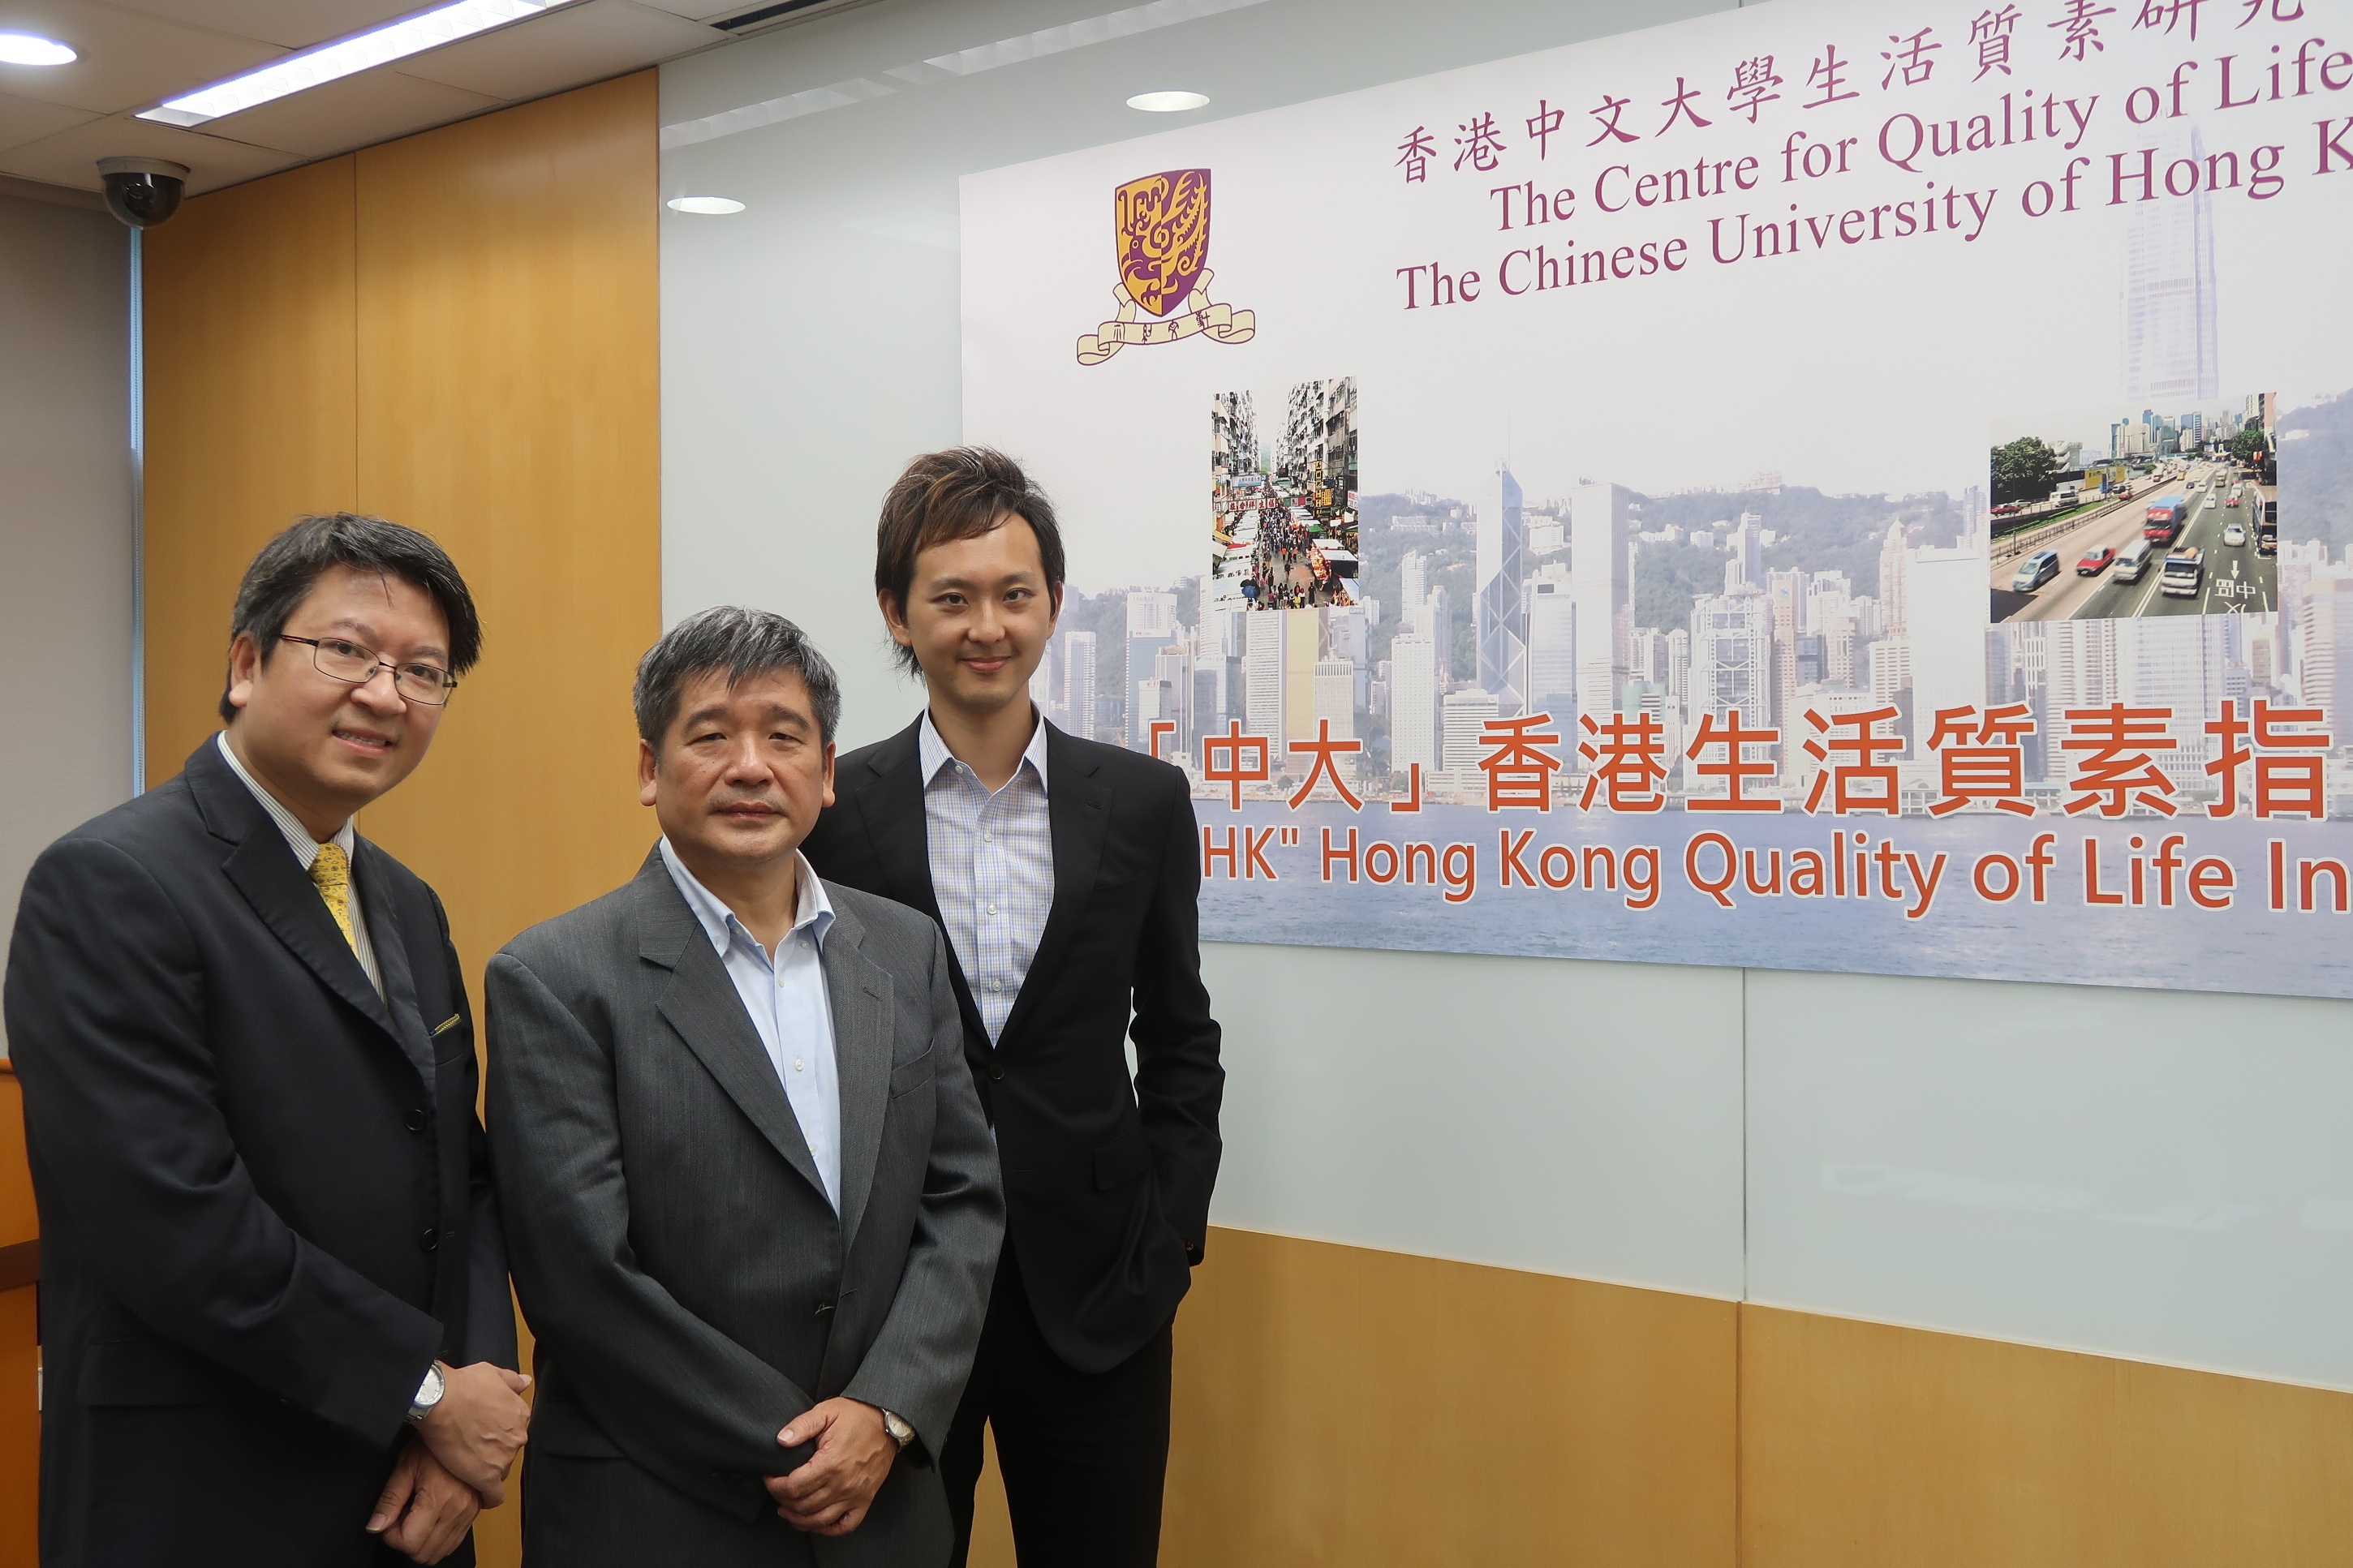 (From left)  Professor Chong Tai-leung Terence, Associate Professor of the Department of Economics, Professor Wong Hung, Director of the Centre for Quality of Life, Hong Kong Institute of Asia-Pacific Studies and Associate Professor of the Department of Social Work, and Professor Chung Yat-nork Roger, Assistant Professor of the Jockey Club School of Public Health and Primary Care, CUHK.